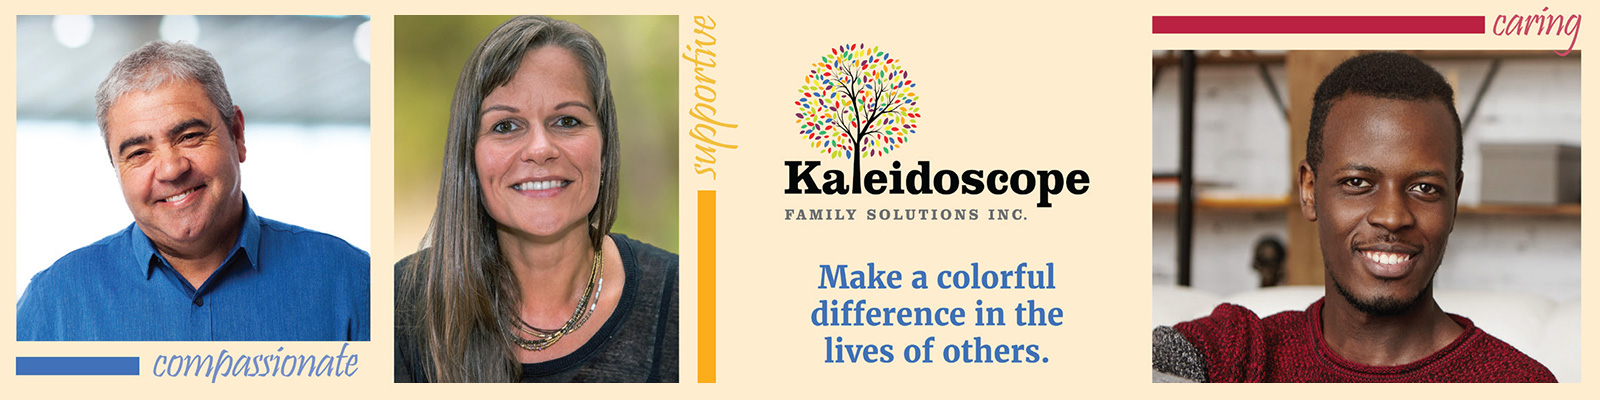 Kaleidoscope Family Solutions Inc - Direct Care Provider banner image